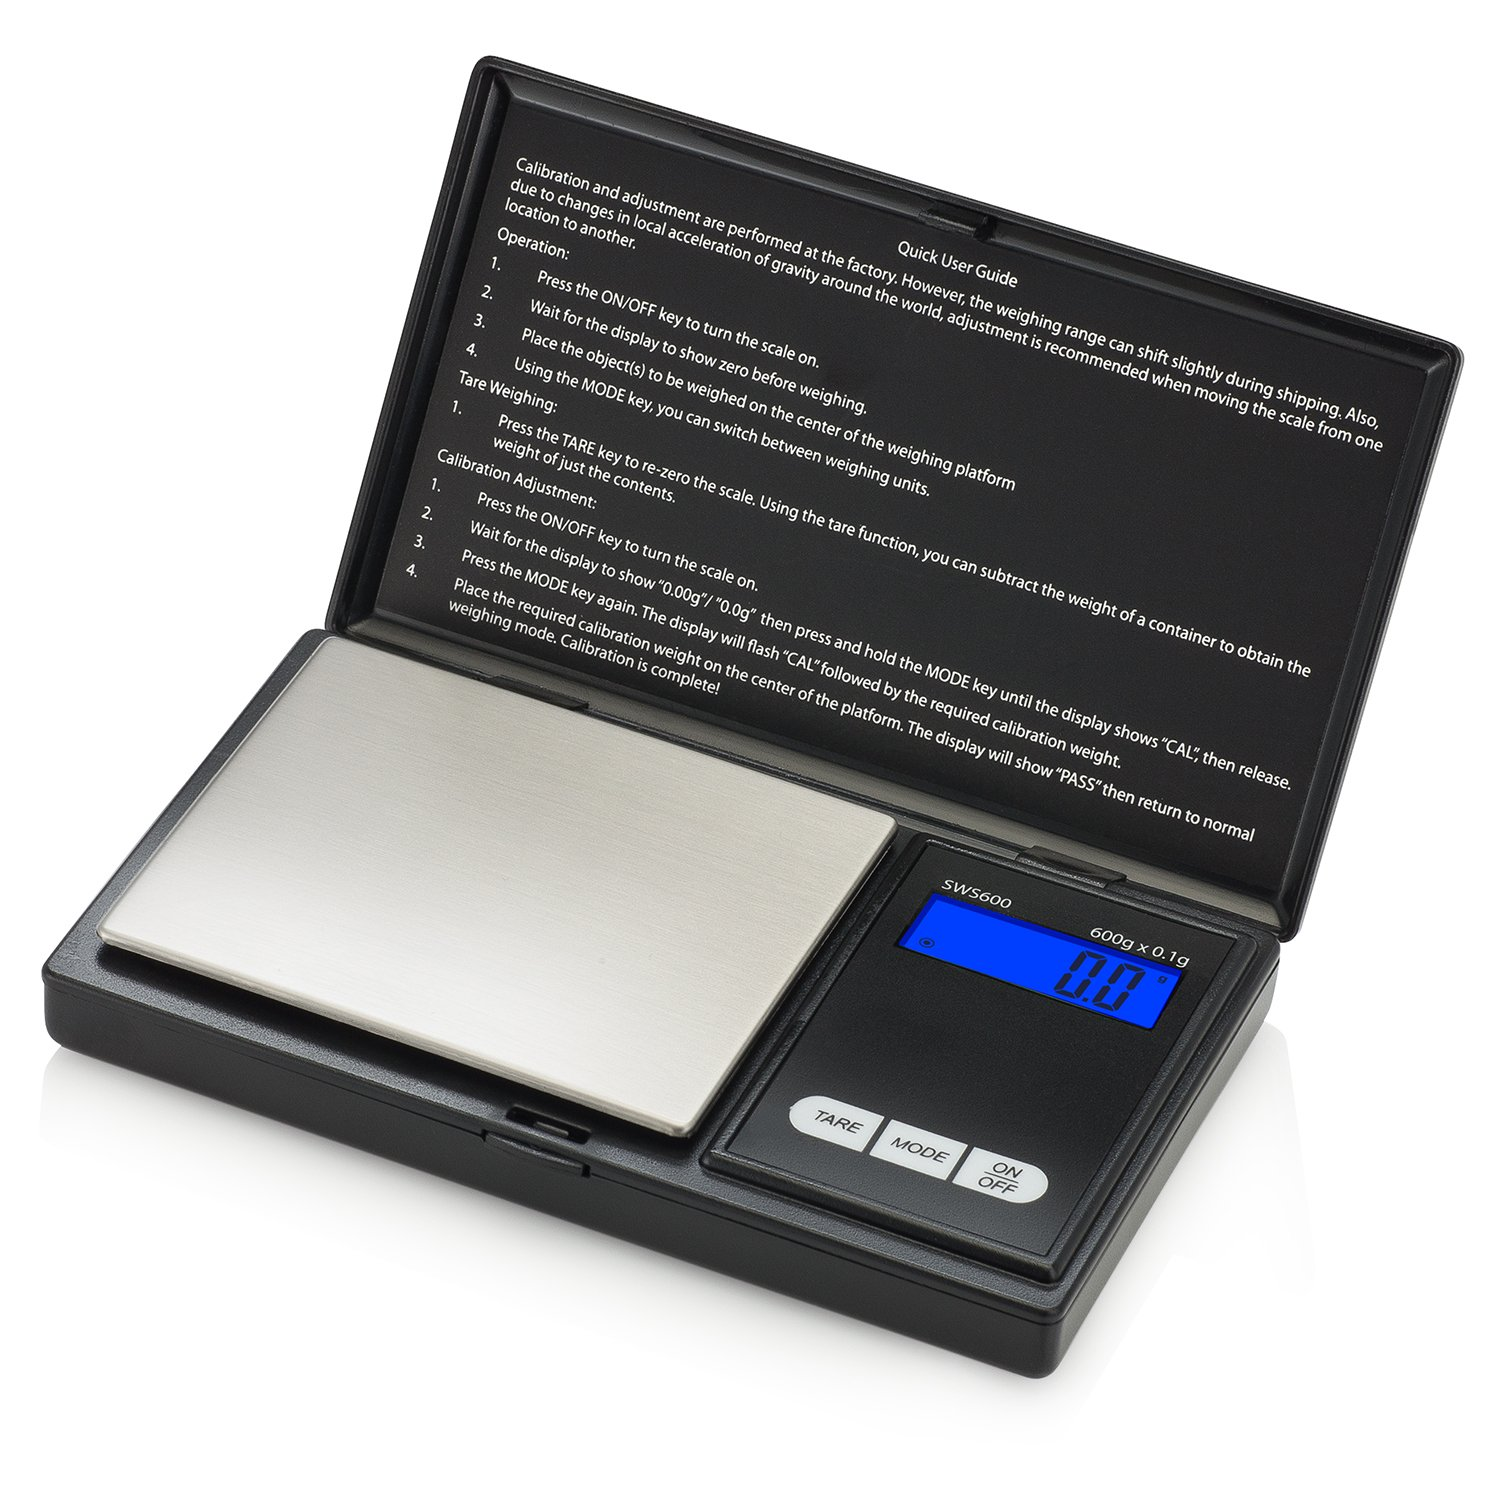 Smart Weigh Digital Pocket Gram Scale 600g x 0.1 Grams, Food Scale, Jewelry Scale, Kitchen Scale, Small Portable Digital Scale Grams and Ounces, Battery Included